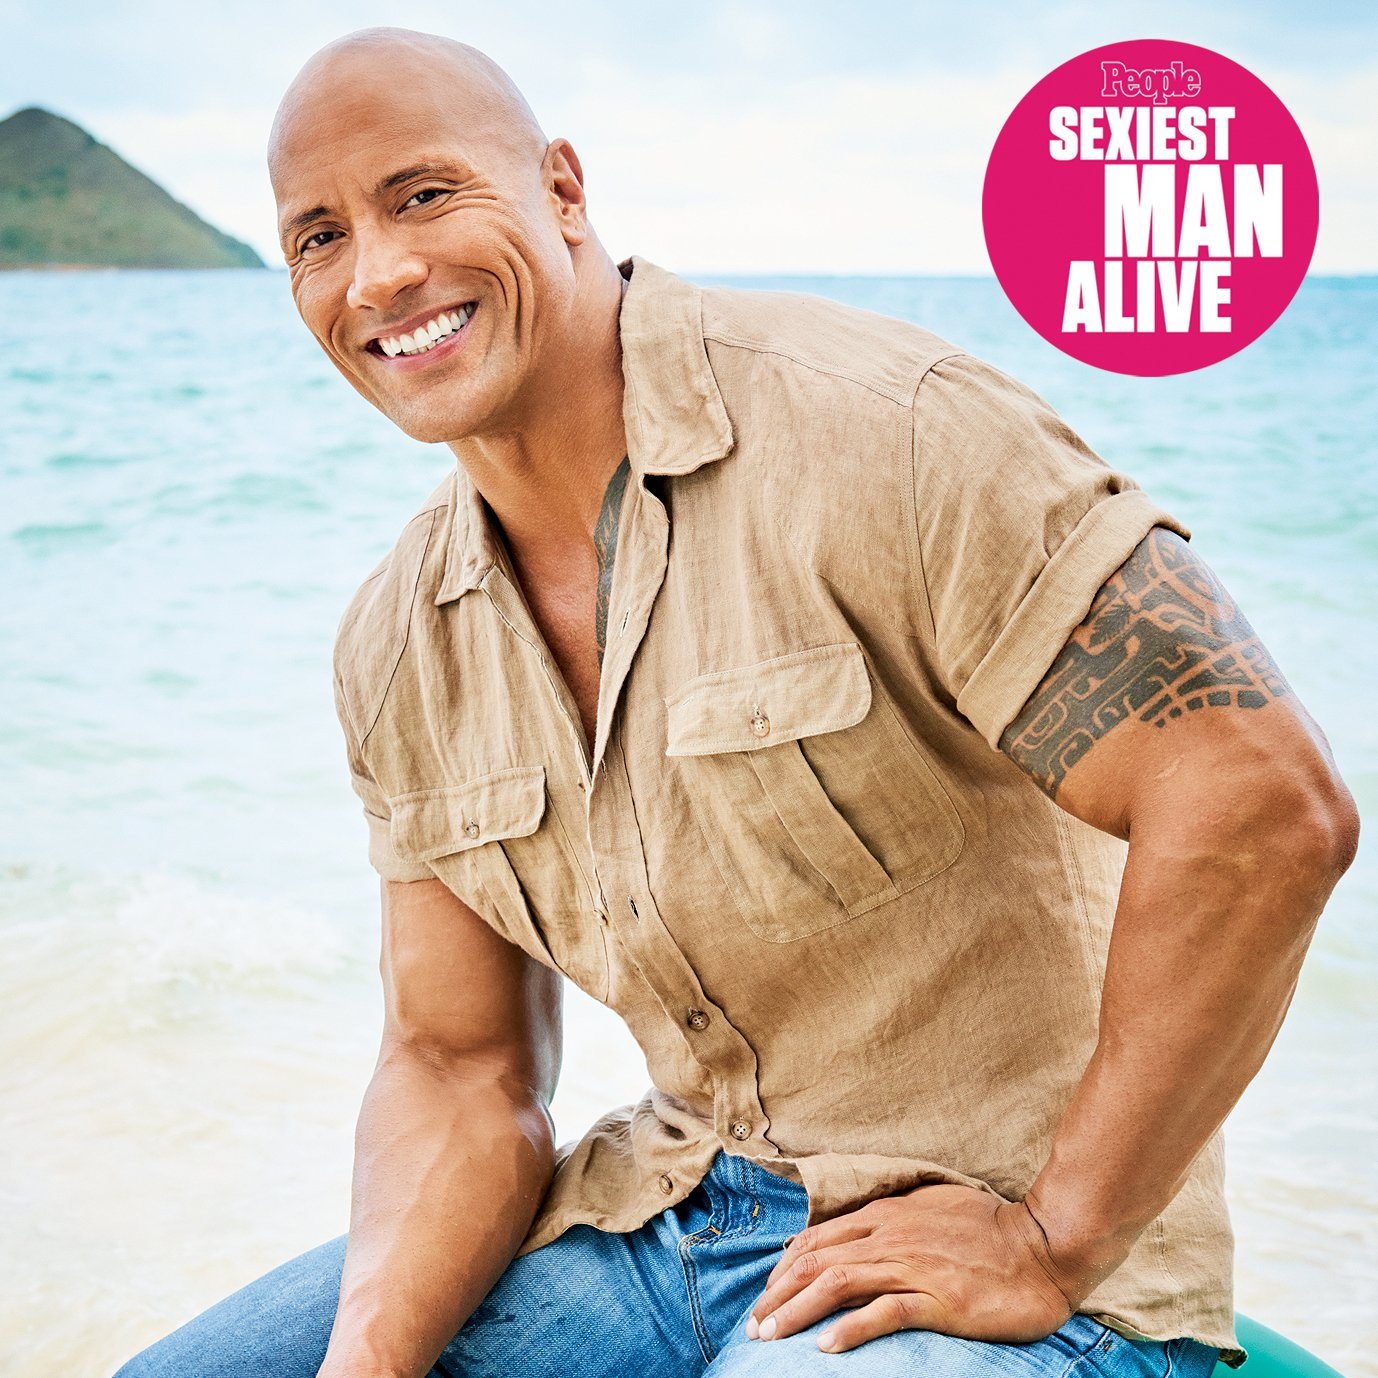 Sexiest Man Alive 2016 Dwayne Johnson The Rock photographed in Kailua, Hawaii on September 13, 2016 Photographer: Jeff Lipsky Barber: Rachel Solow Makeup: Merc Arceneaux/Merc Beauty Inc. Prop Stylist: Chris Reiner Stylist: Robert Mata Shirt: John Varvatos† Jeans: AG Jeans†